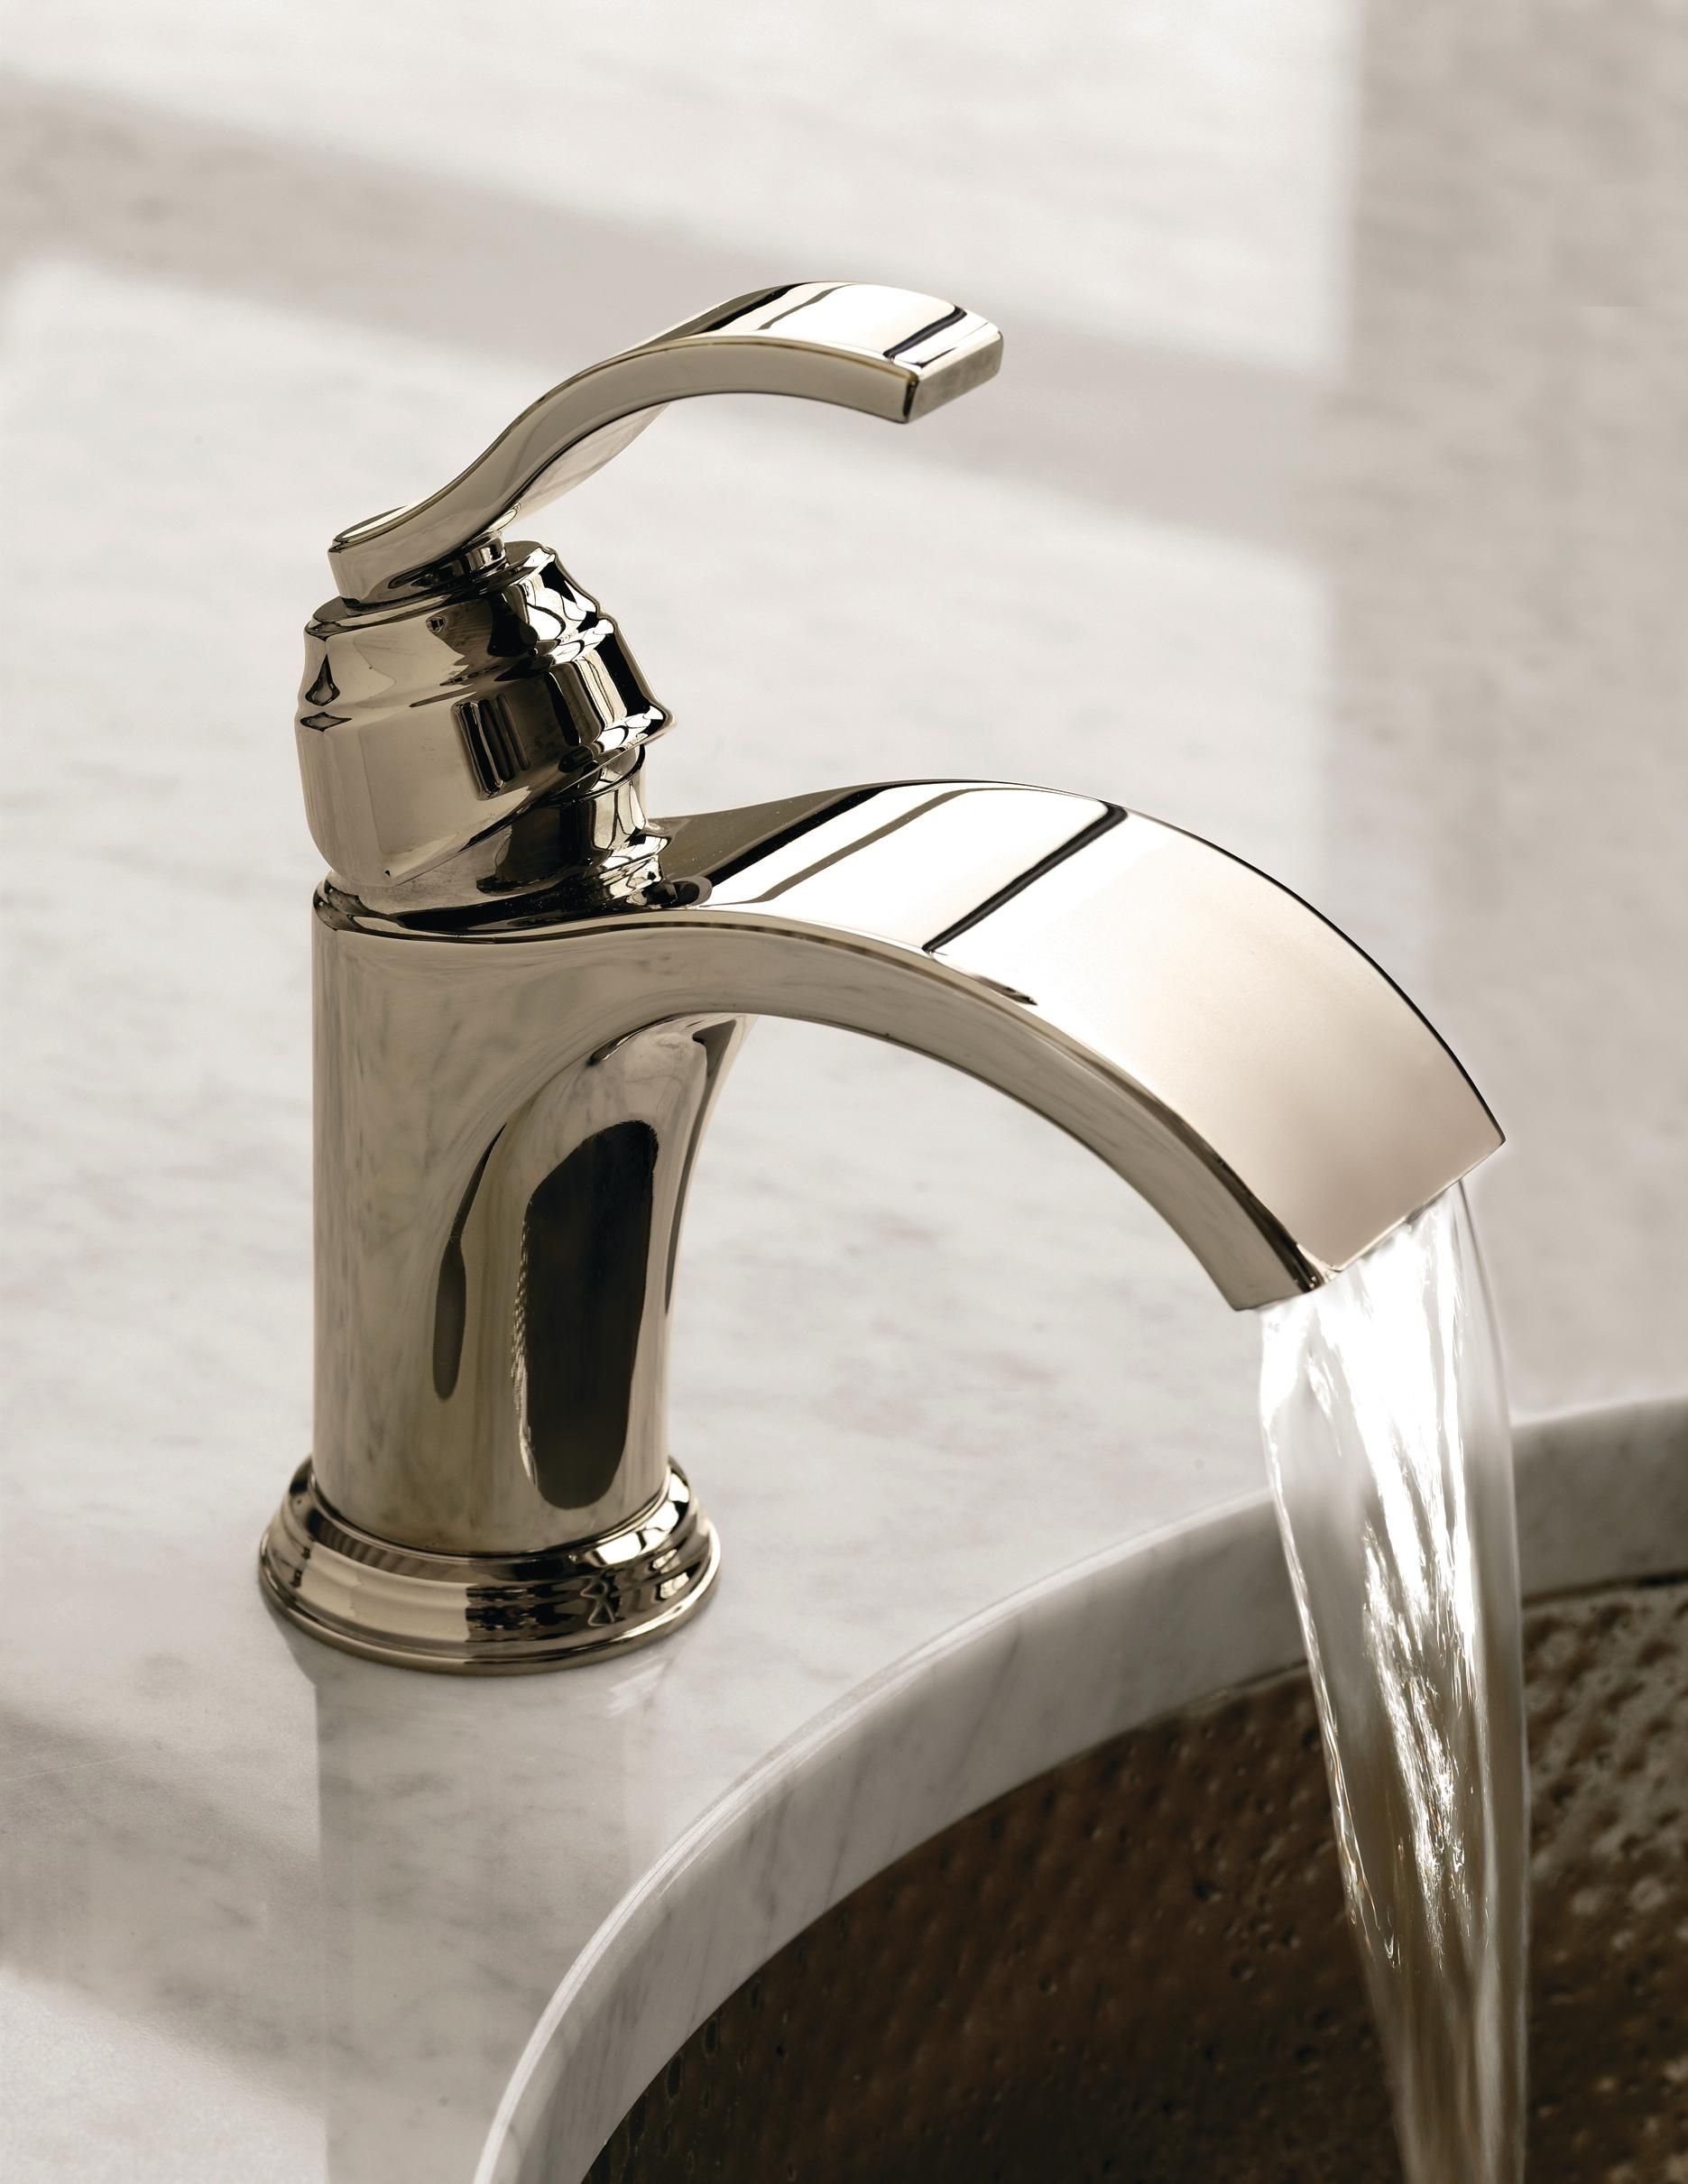 WaterSense-Certified Waterfall Faucet From Danze | Remodel Ideas ...